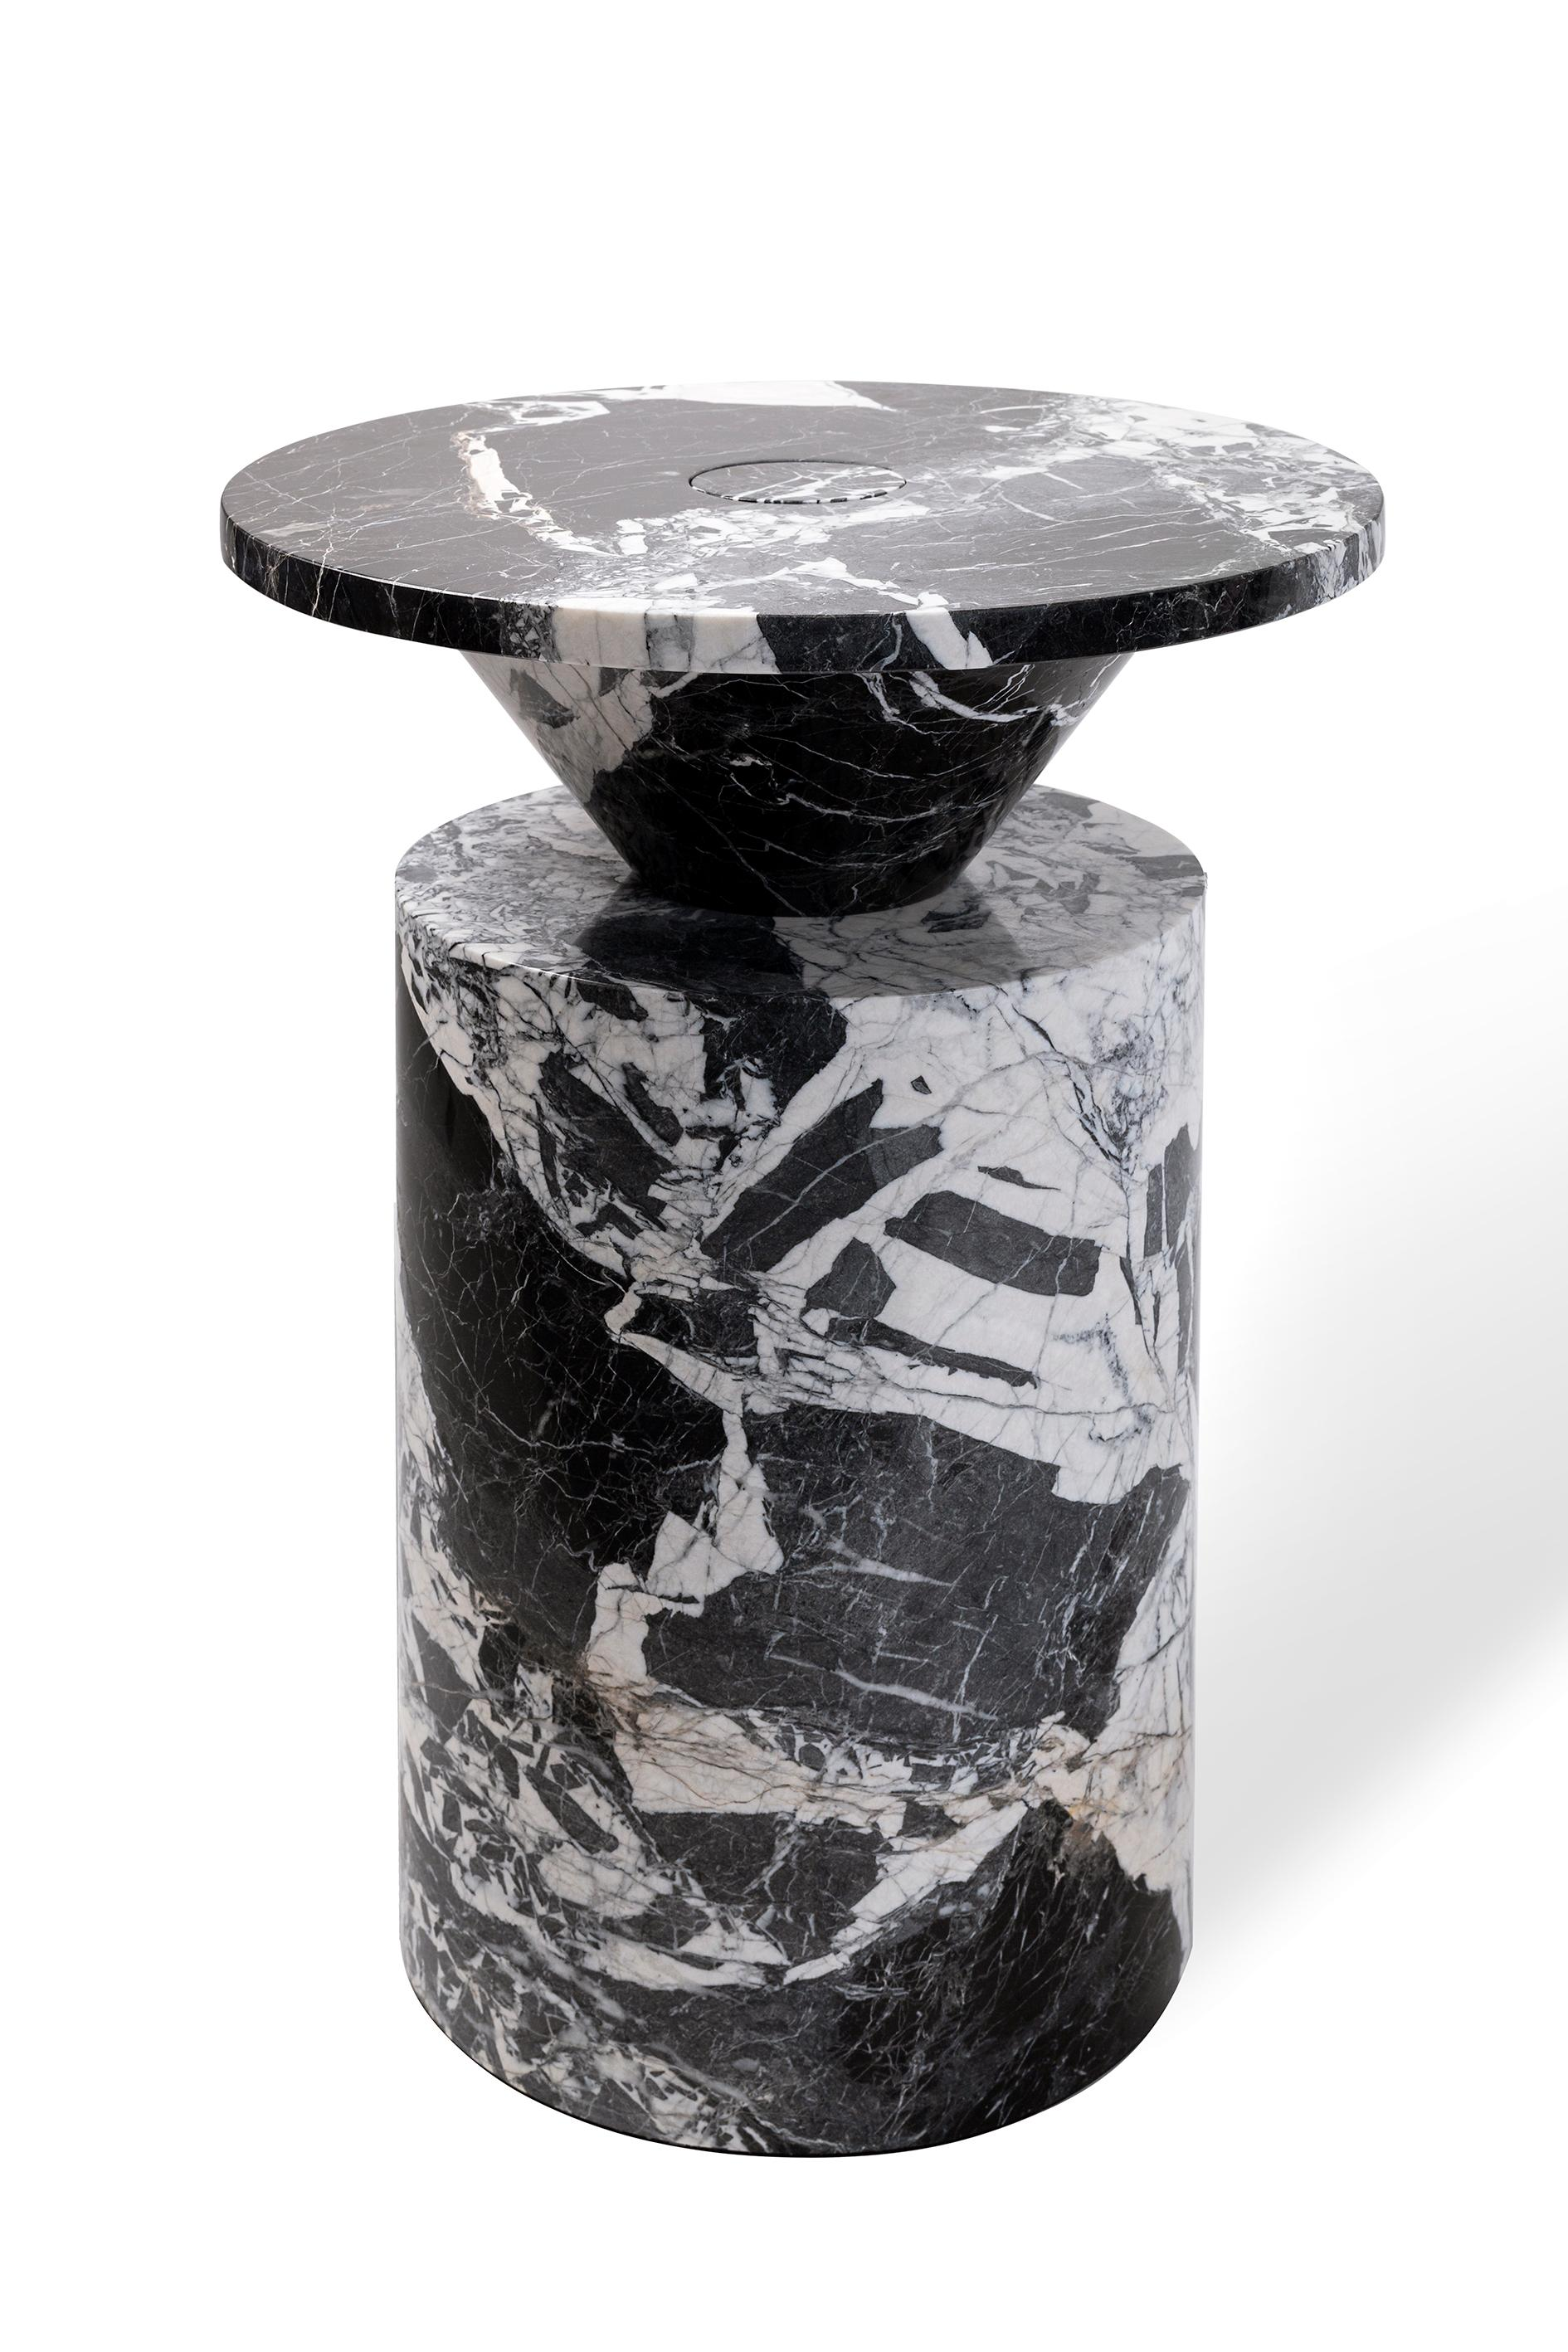 Coffee Table in Black Antique Marble, by Karen Chekerdjian, Numbered Edition